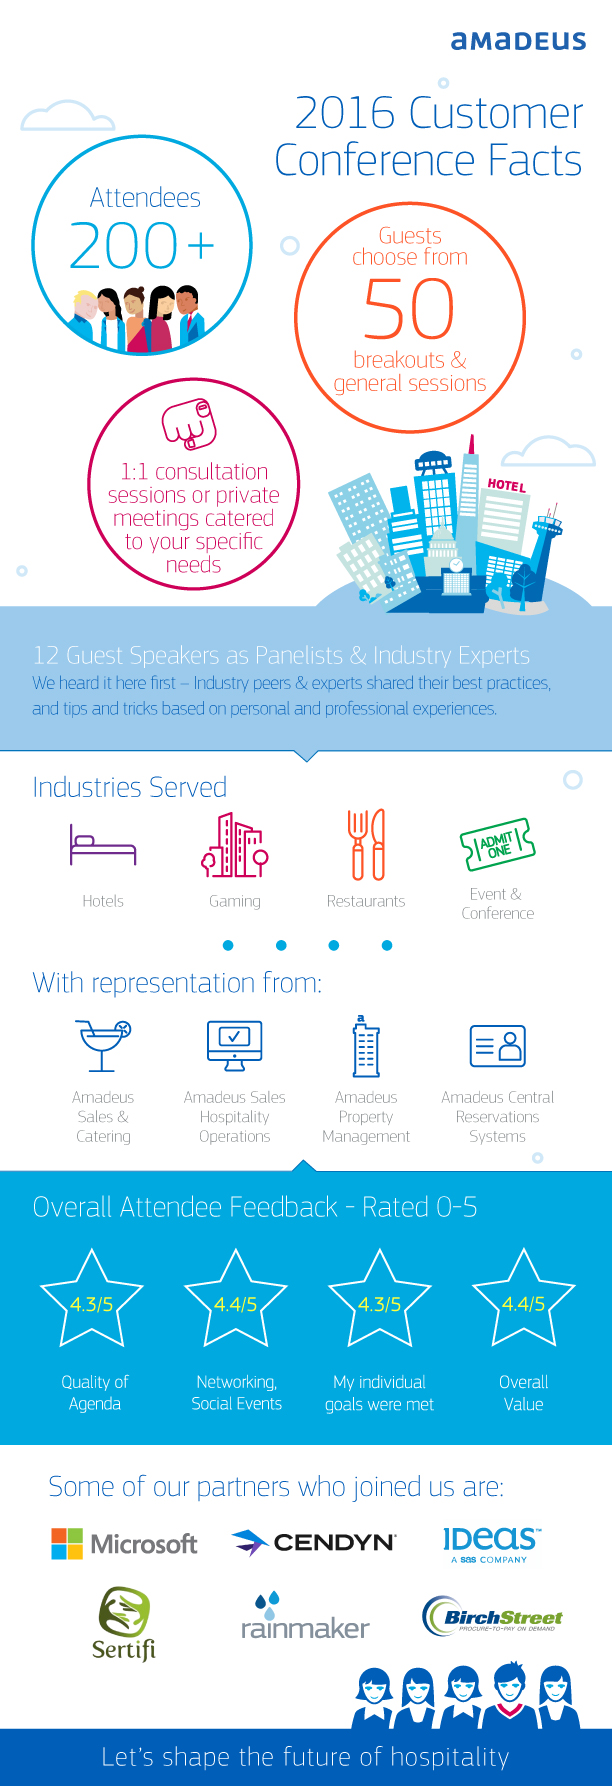 Amadeus Hospitality Customer Conference 2016 Facts Infographic